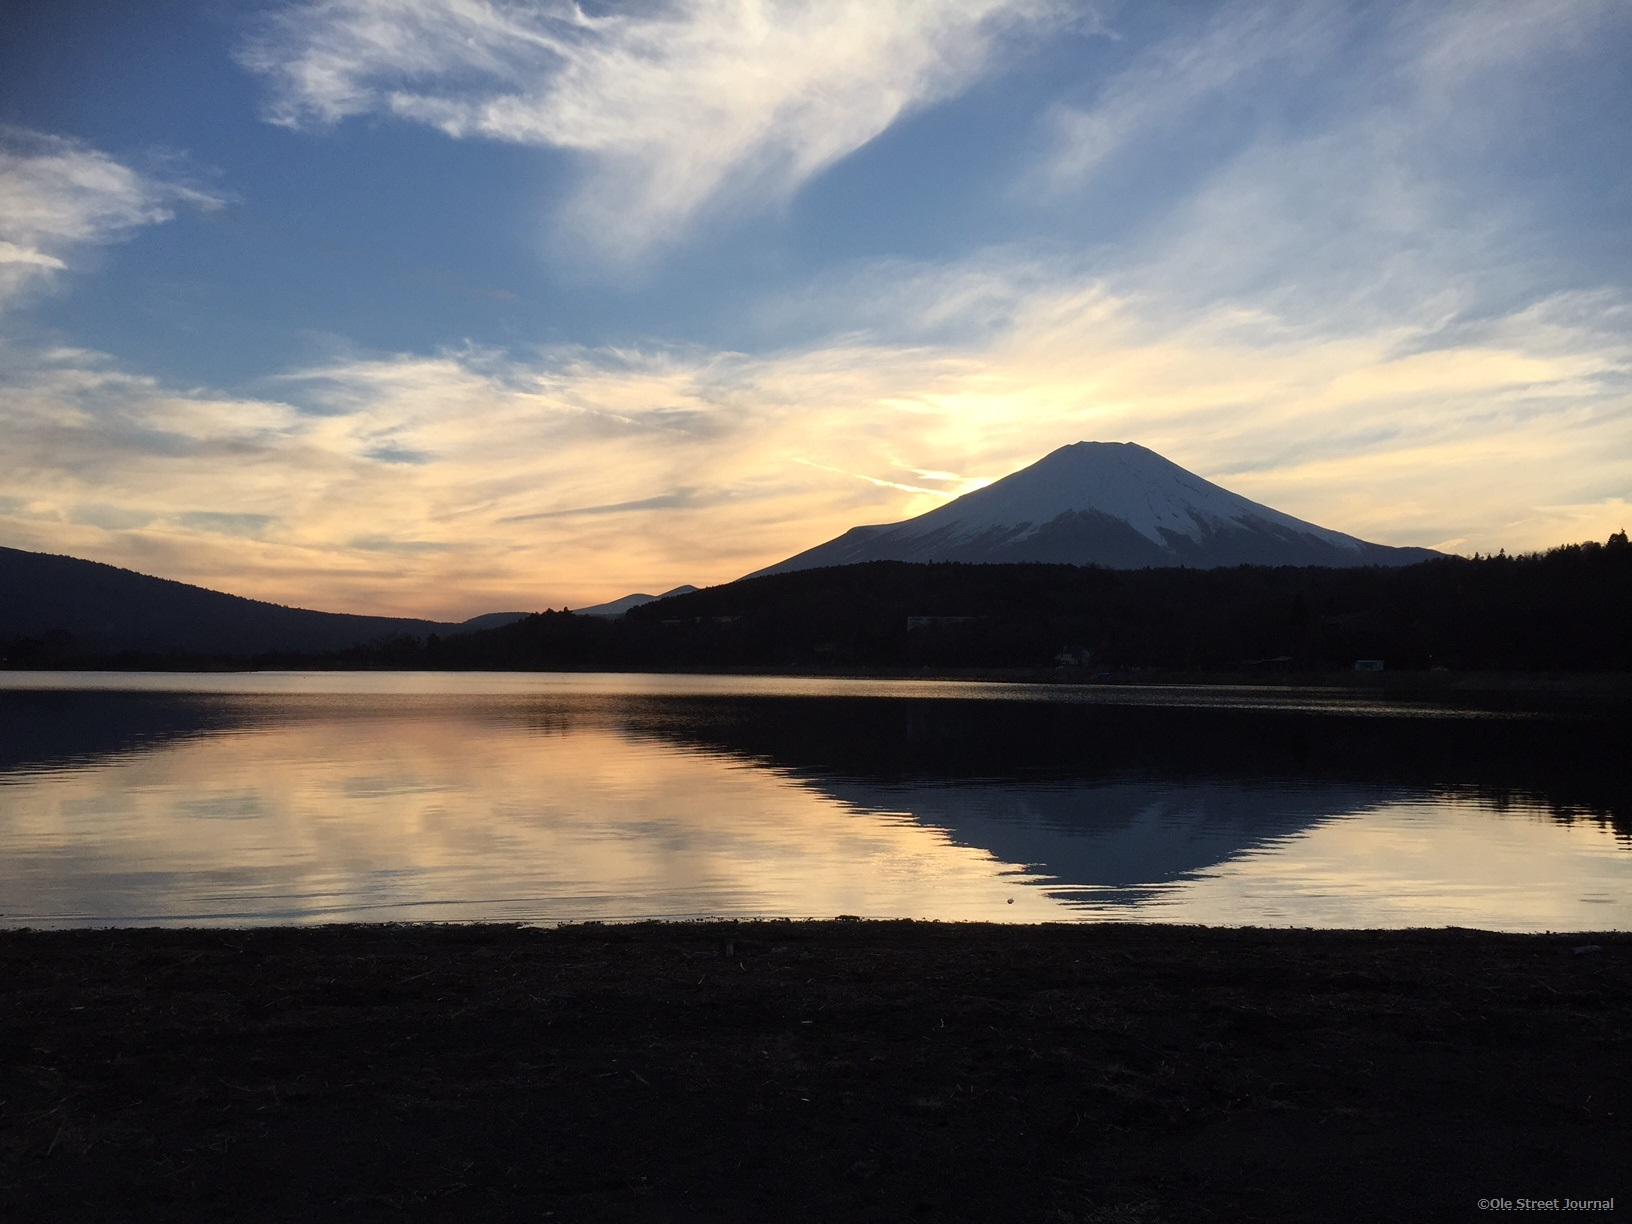 lake yamanaka and mt fuji